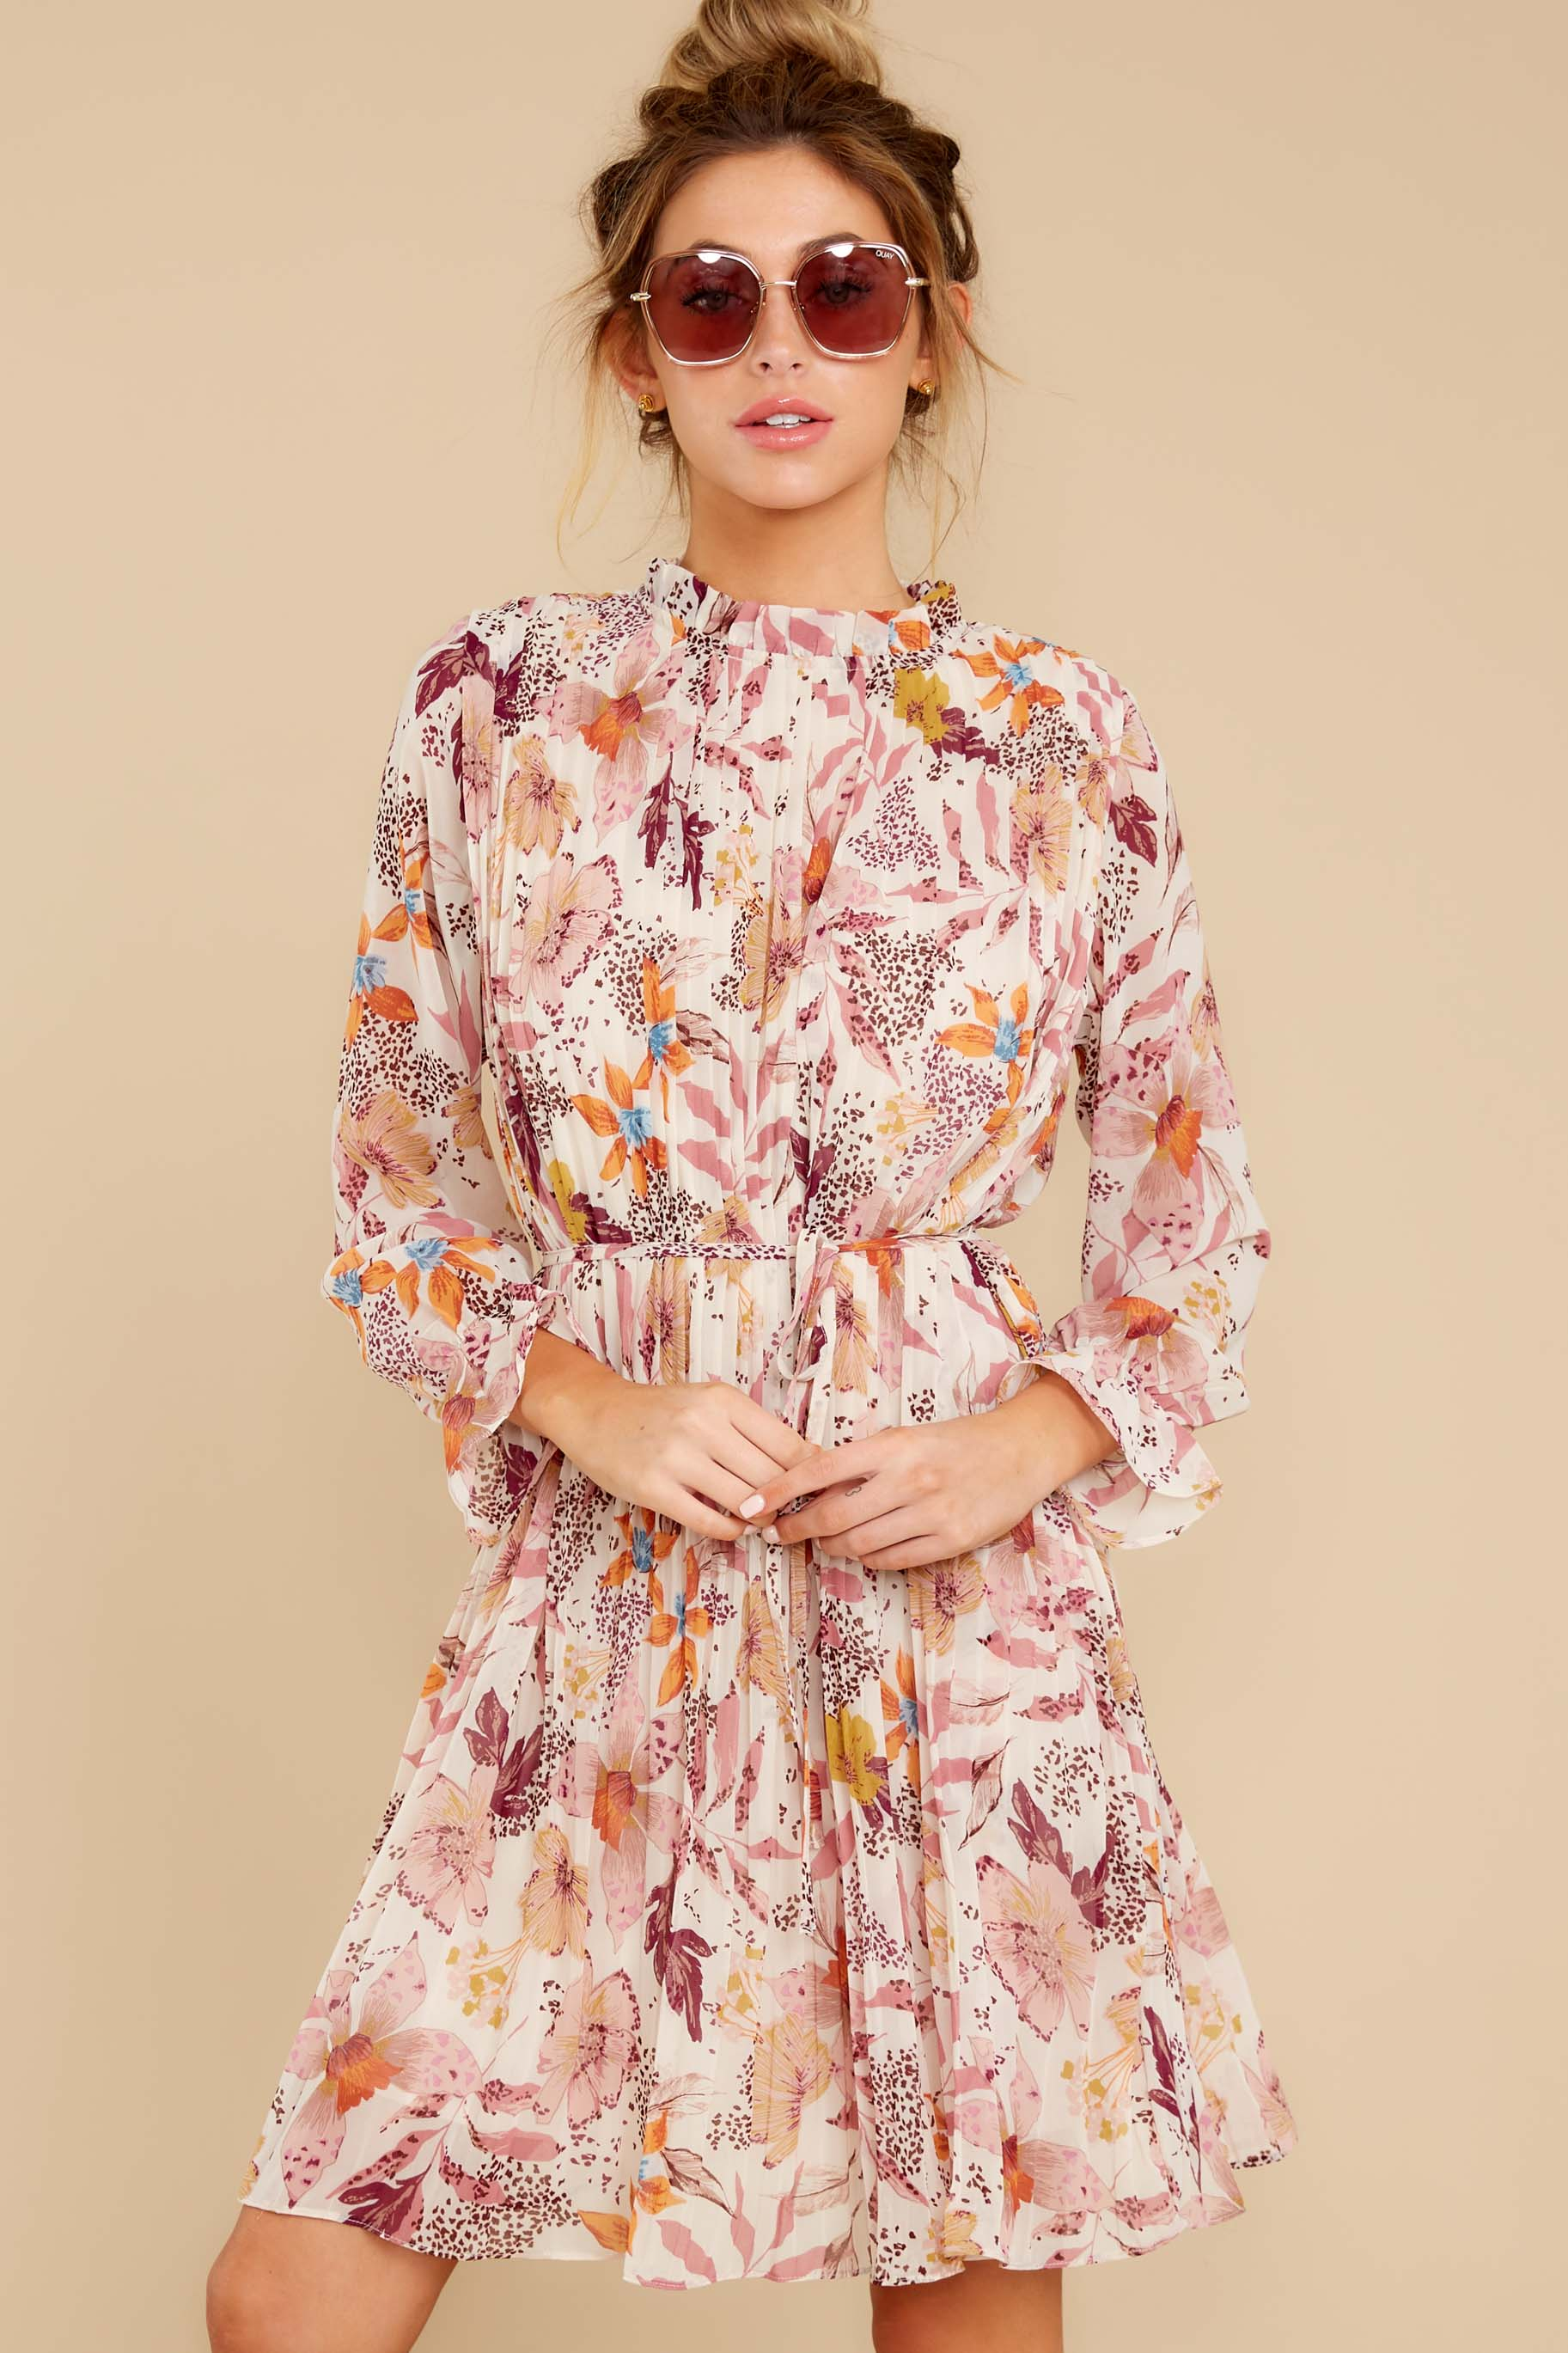 6 Straight For Your Heart Ivory Floral Print Dress at reddressboutique.com